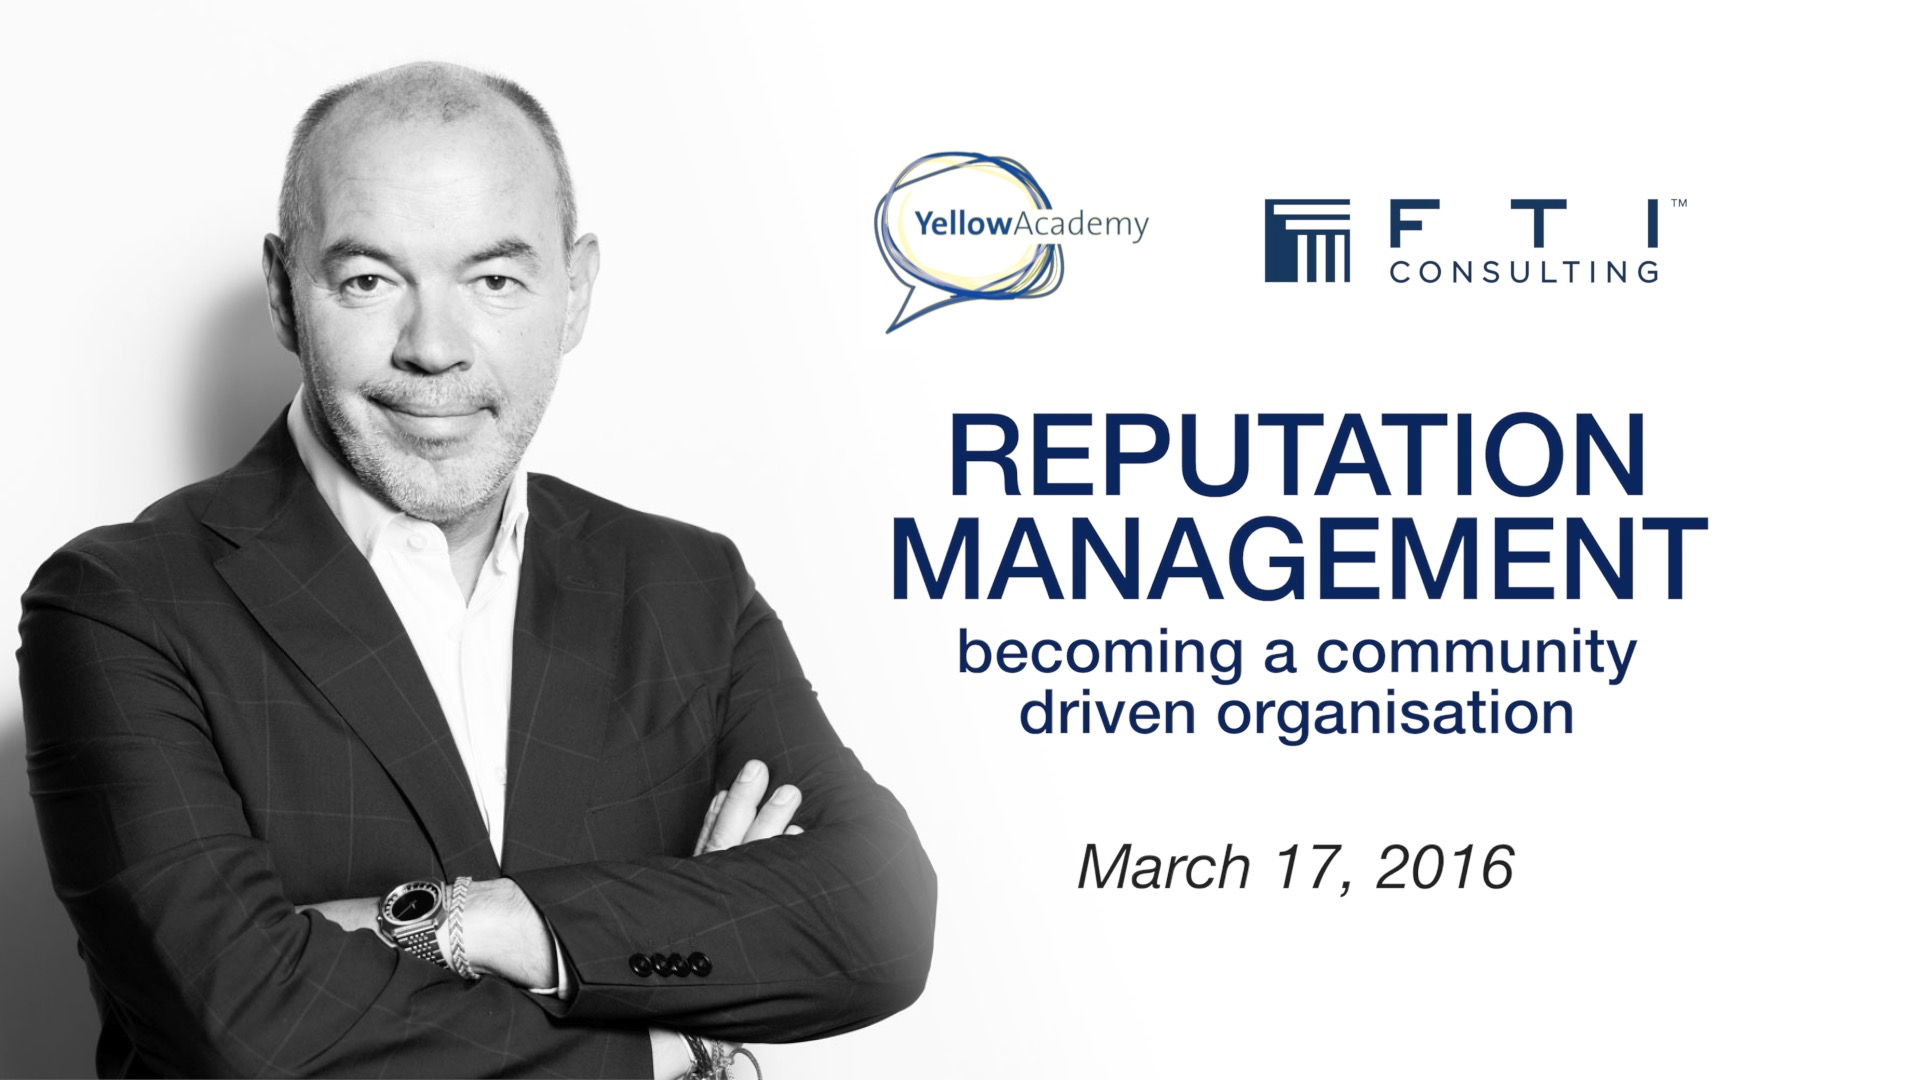 Reputation management: becoming a community driven organisation